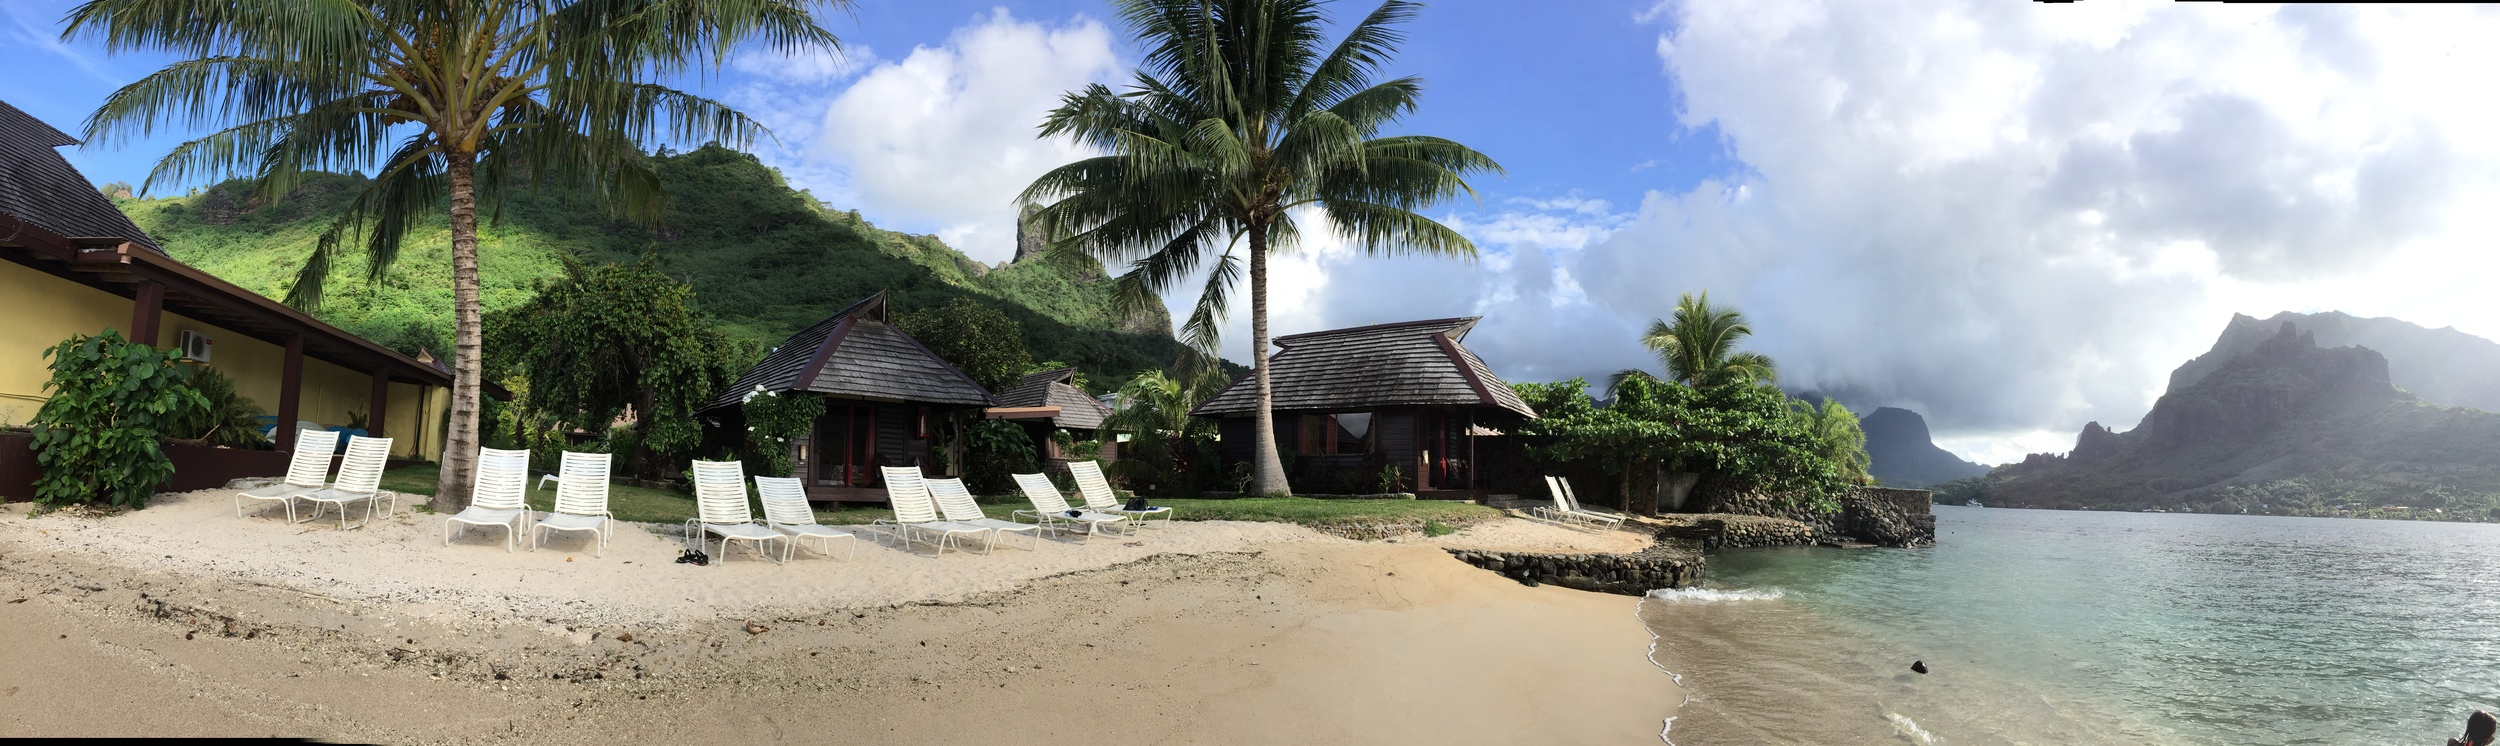 The Kaveka Hotel on Cook's Bay in Moorea where I stayed in a bungalow for 10 days.